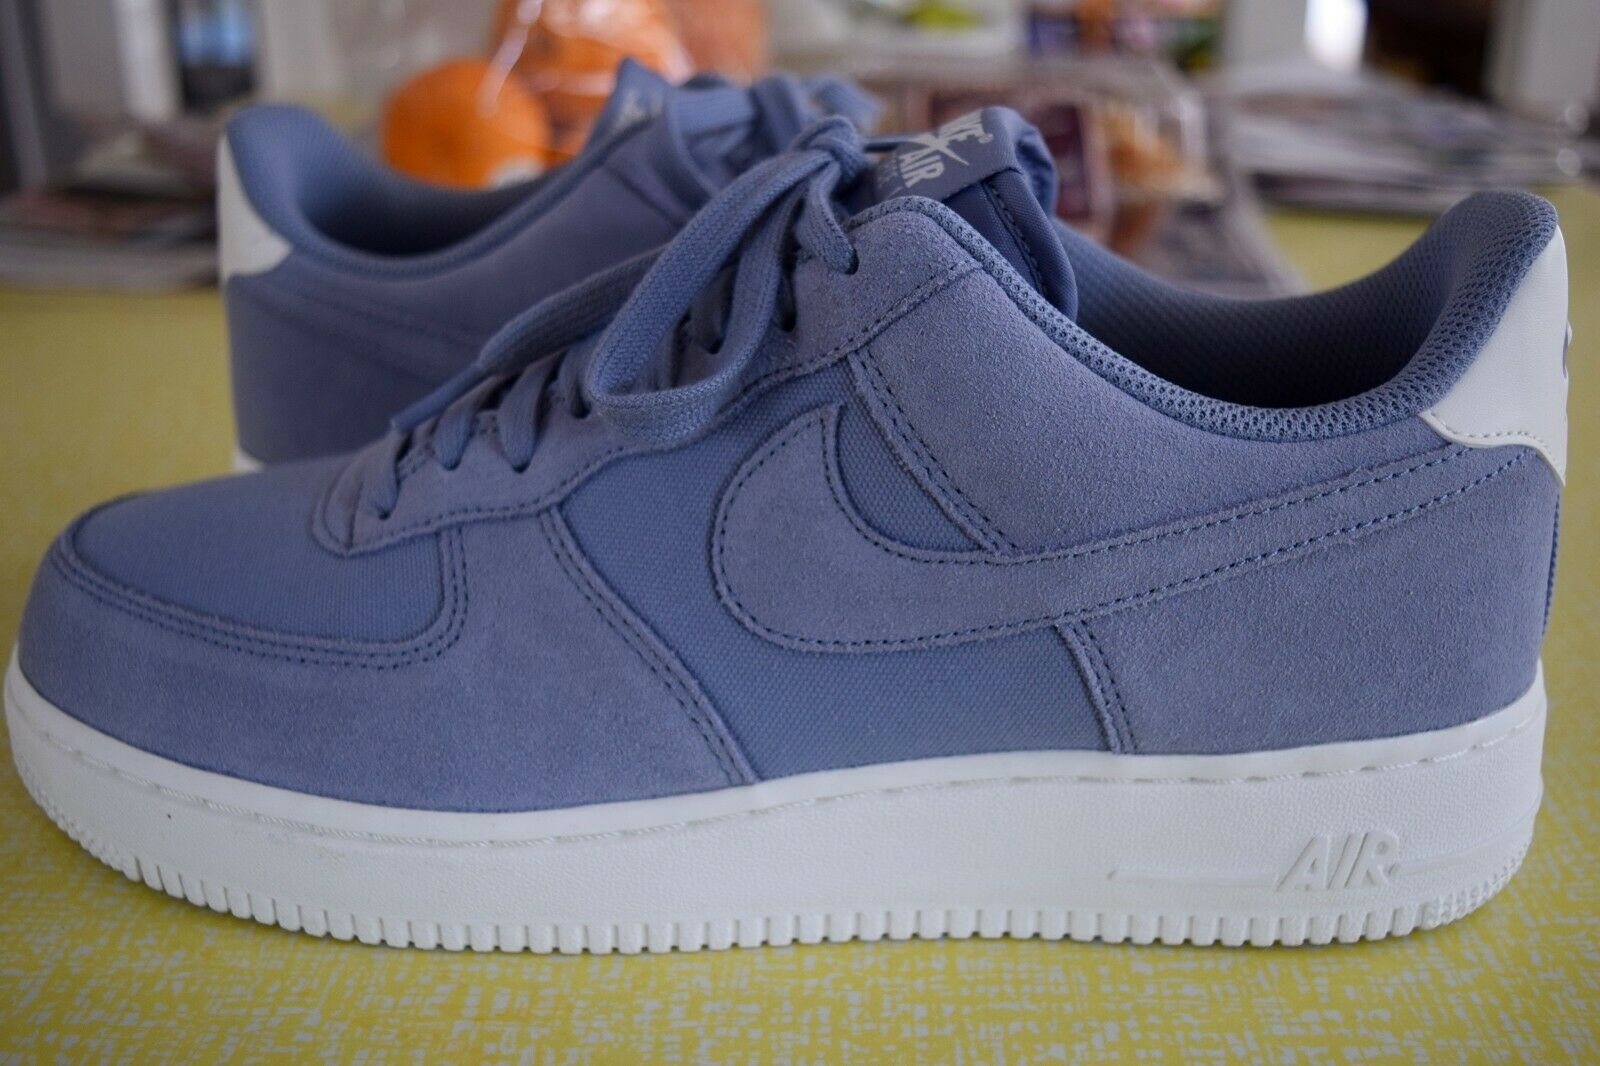 NIKE AIR FORCE 1 '07 A03835-400 ASHEN SLATE HARD TO FIND SIZE 9.5